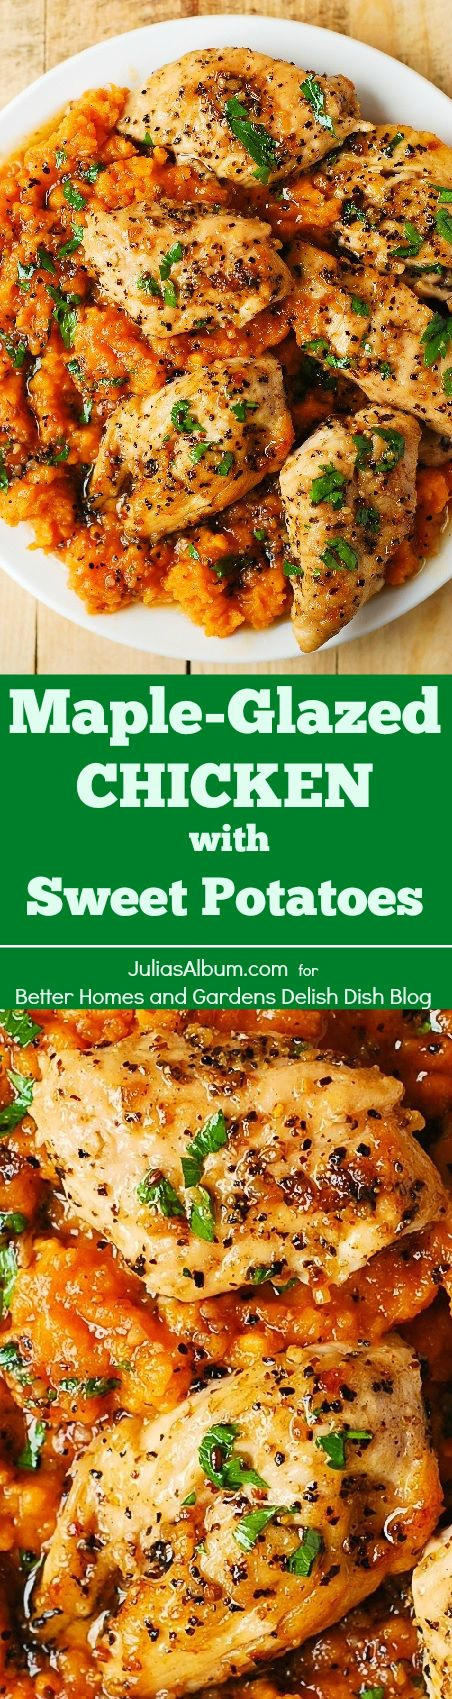 Maple-Glazed Chicken with Sweet Potatoes - SO good,lots of protein, fiber, and…